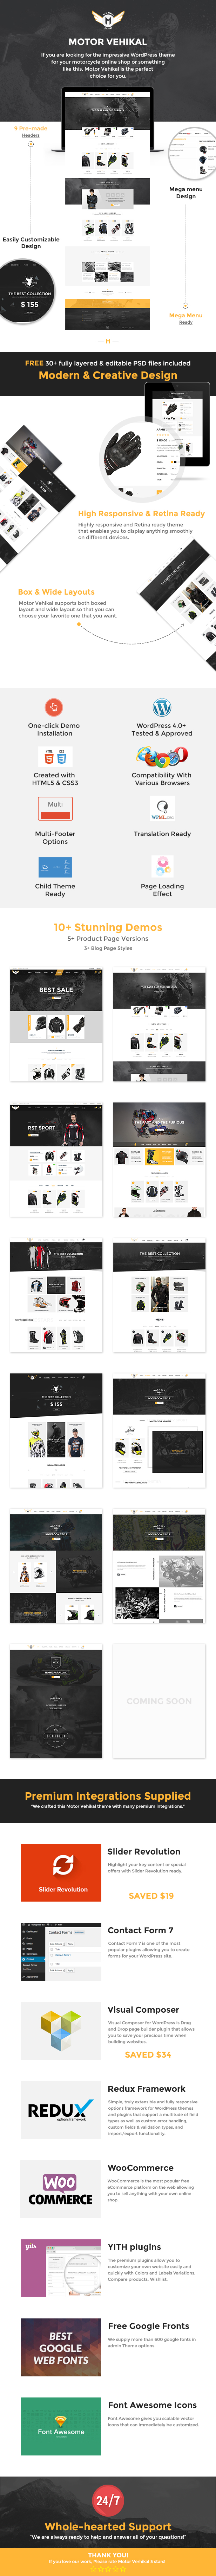 motor vehikal3 - Motor Vehikal - Motorcycle Online Store WordPress Theme